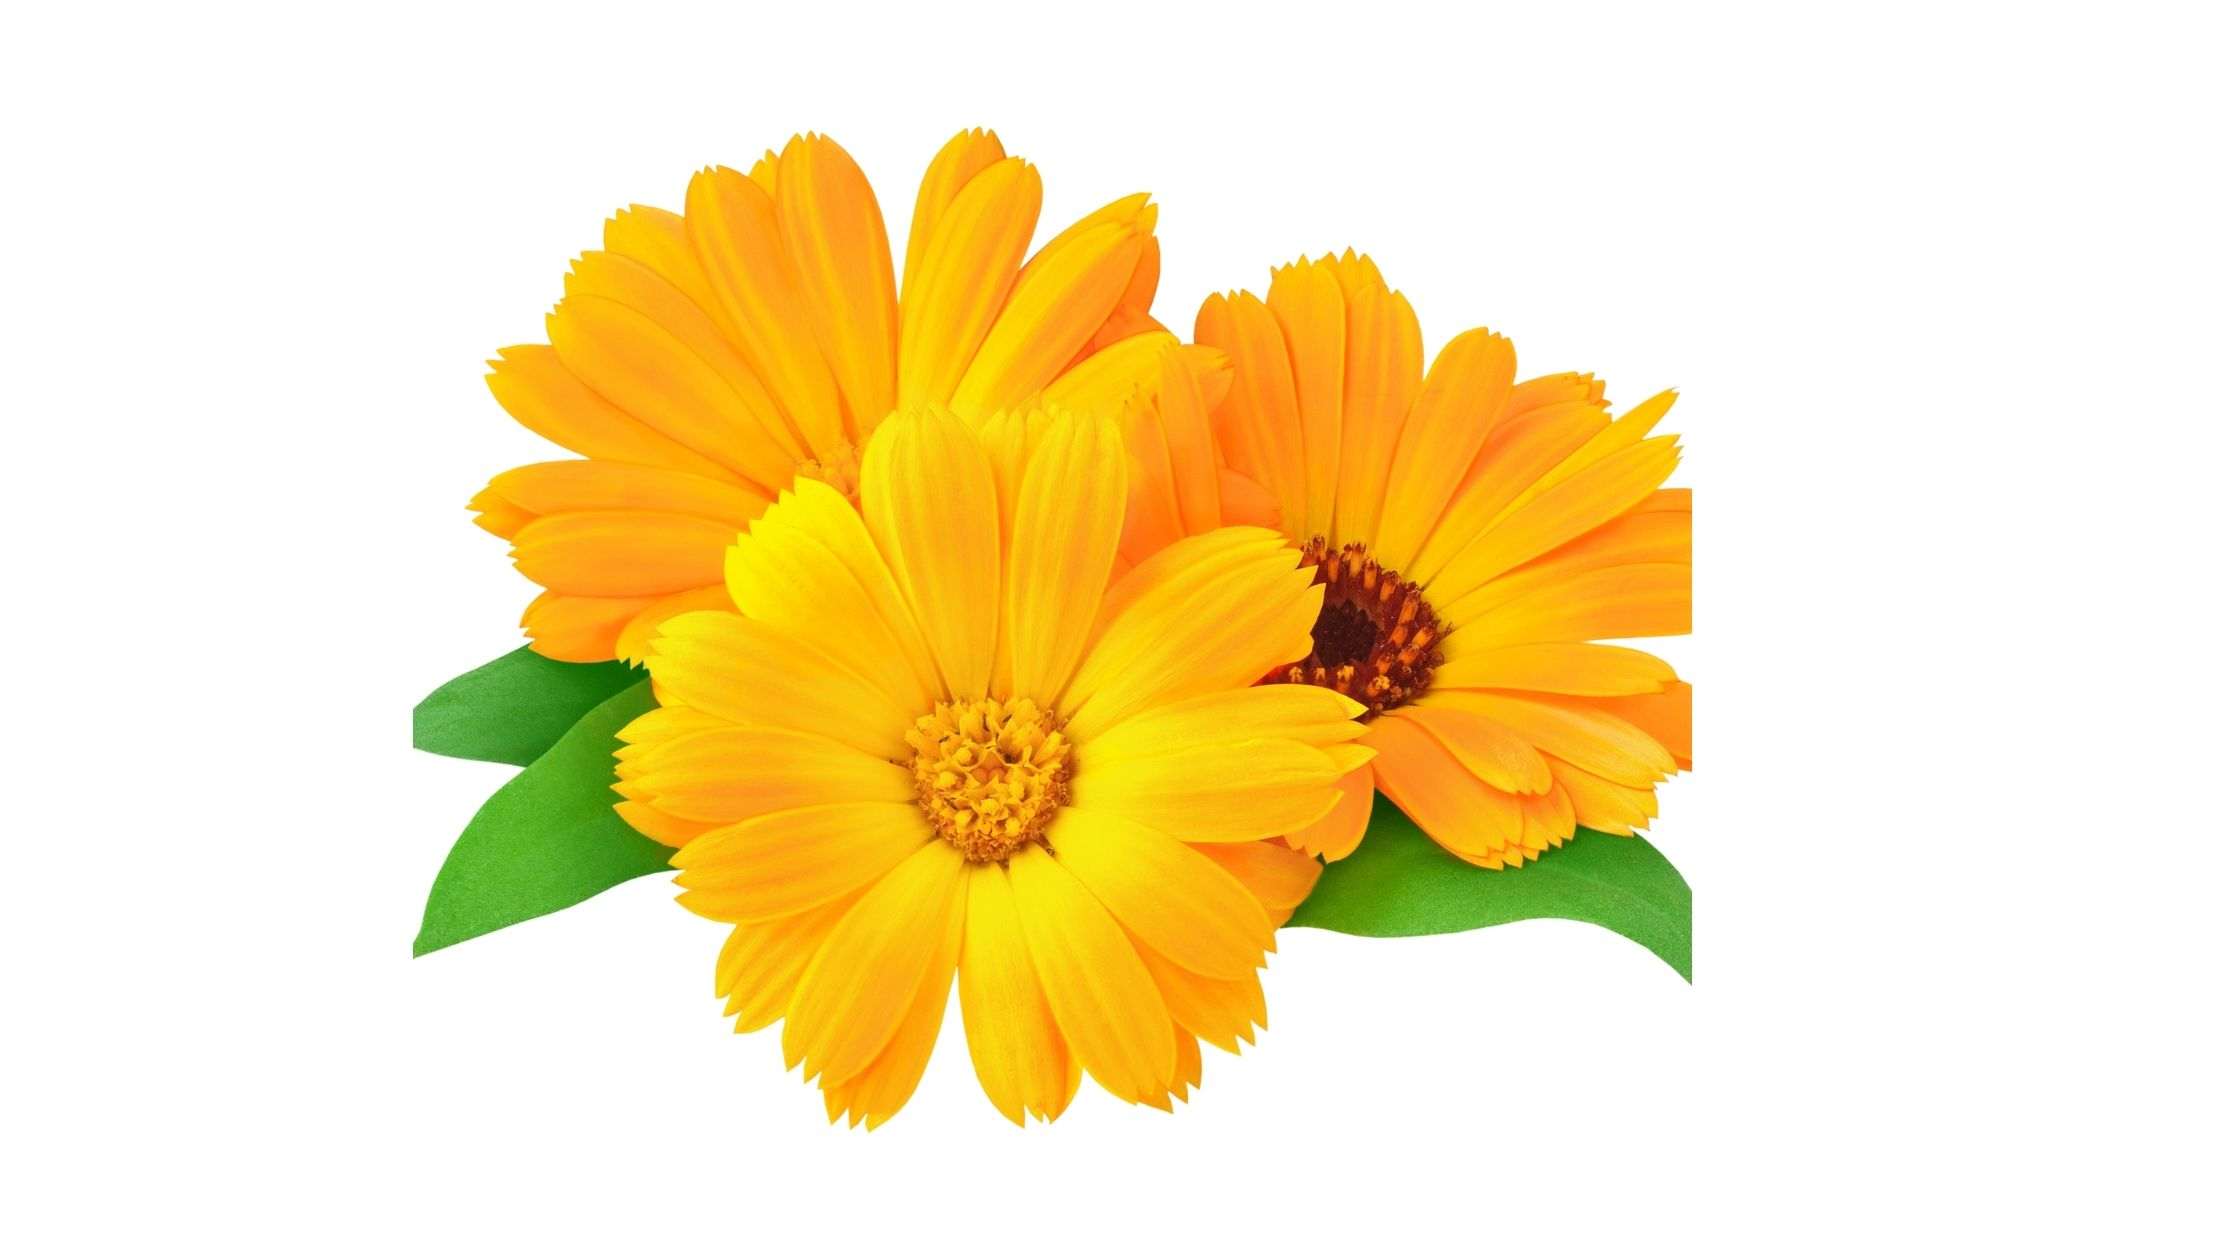 Calendula and mallow Remedies to Reduce Vaginal Dryness